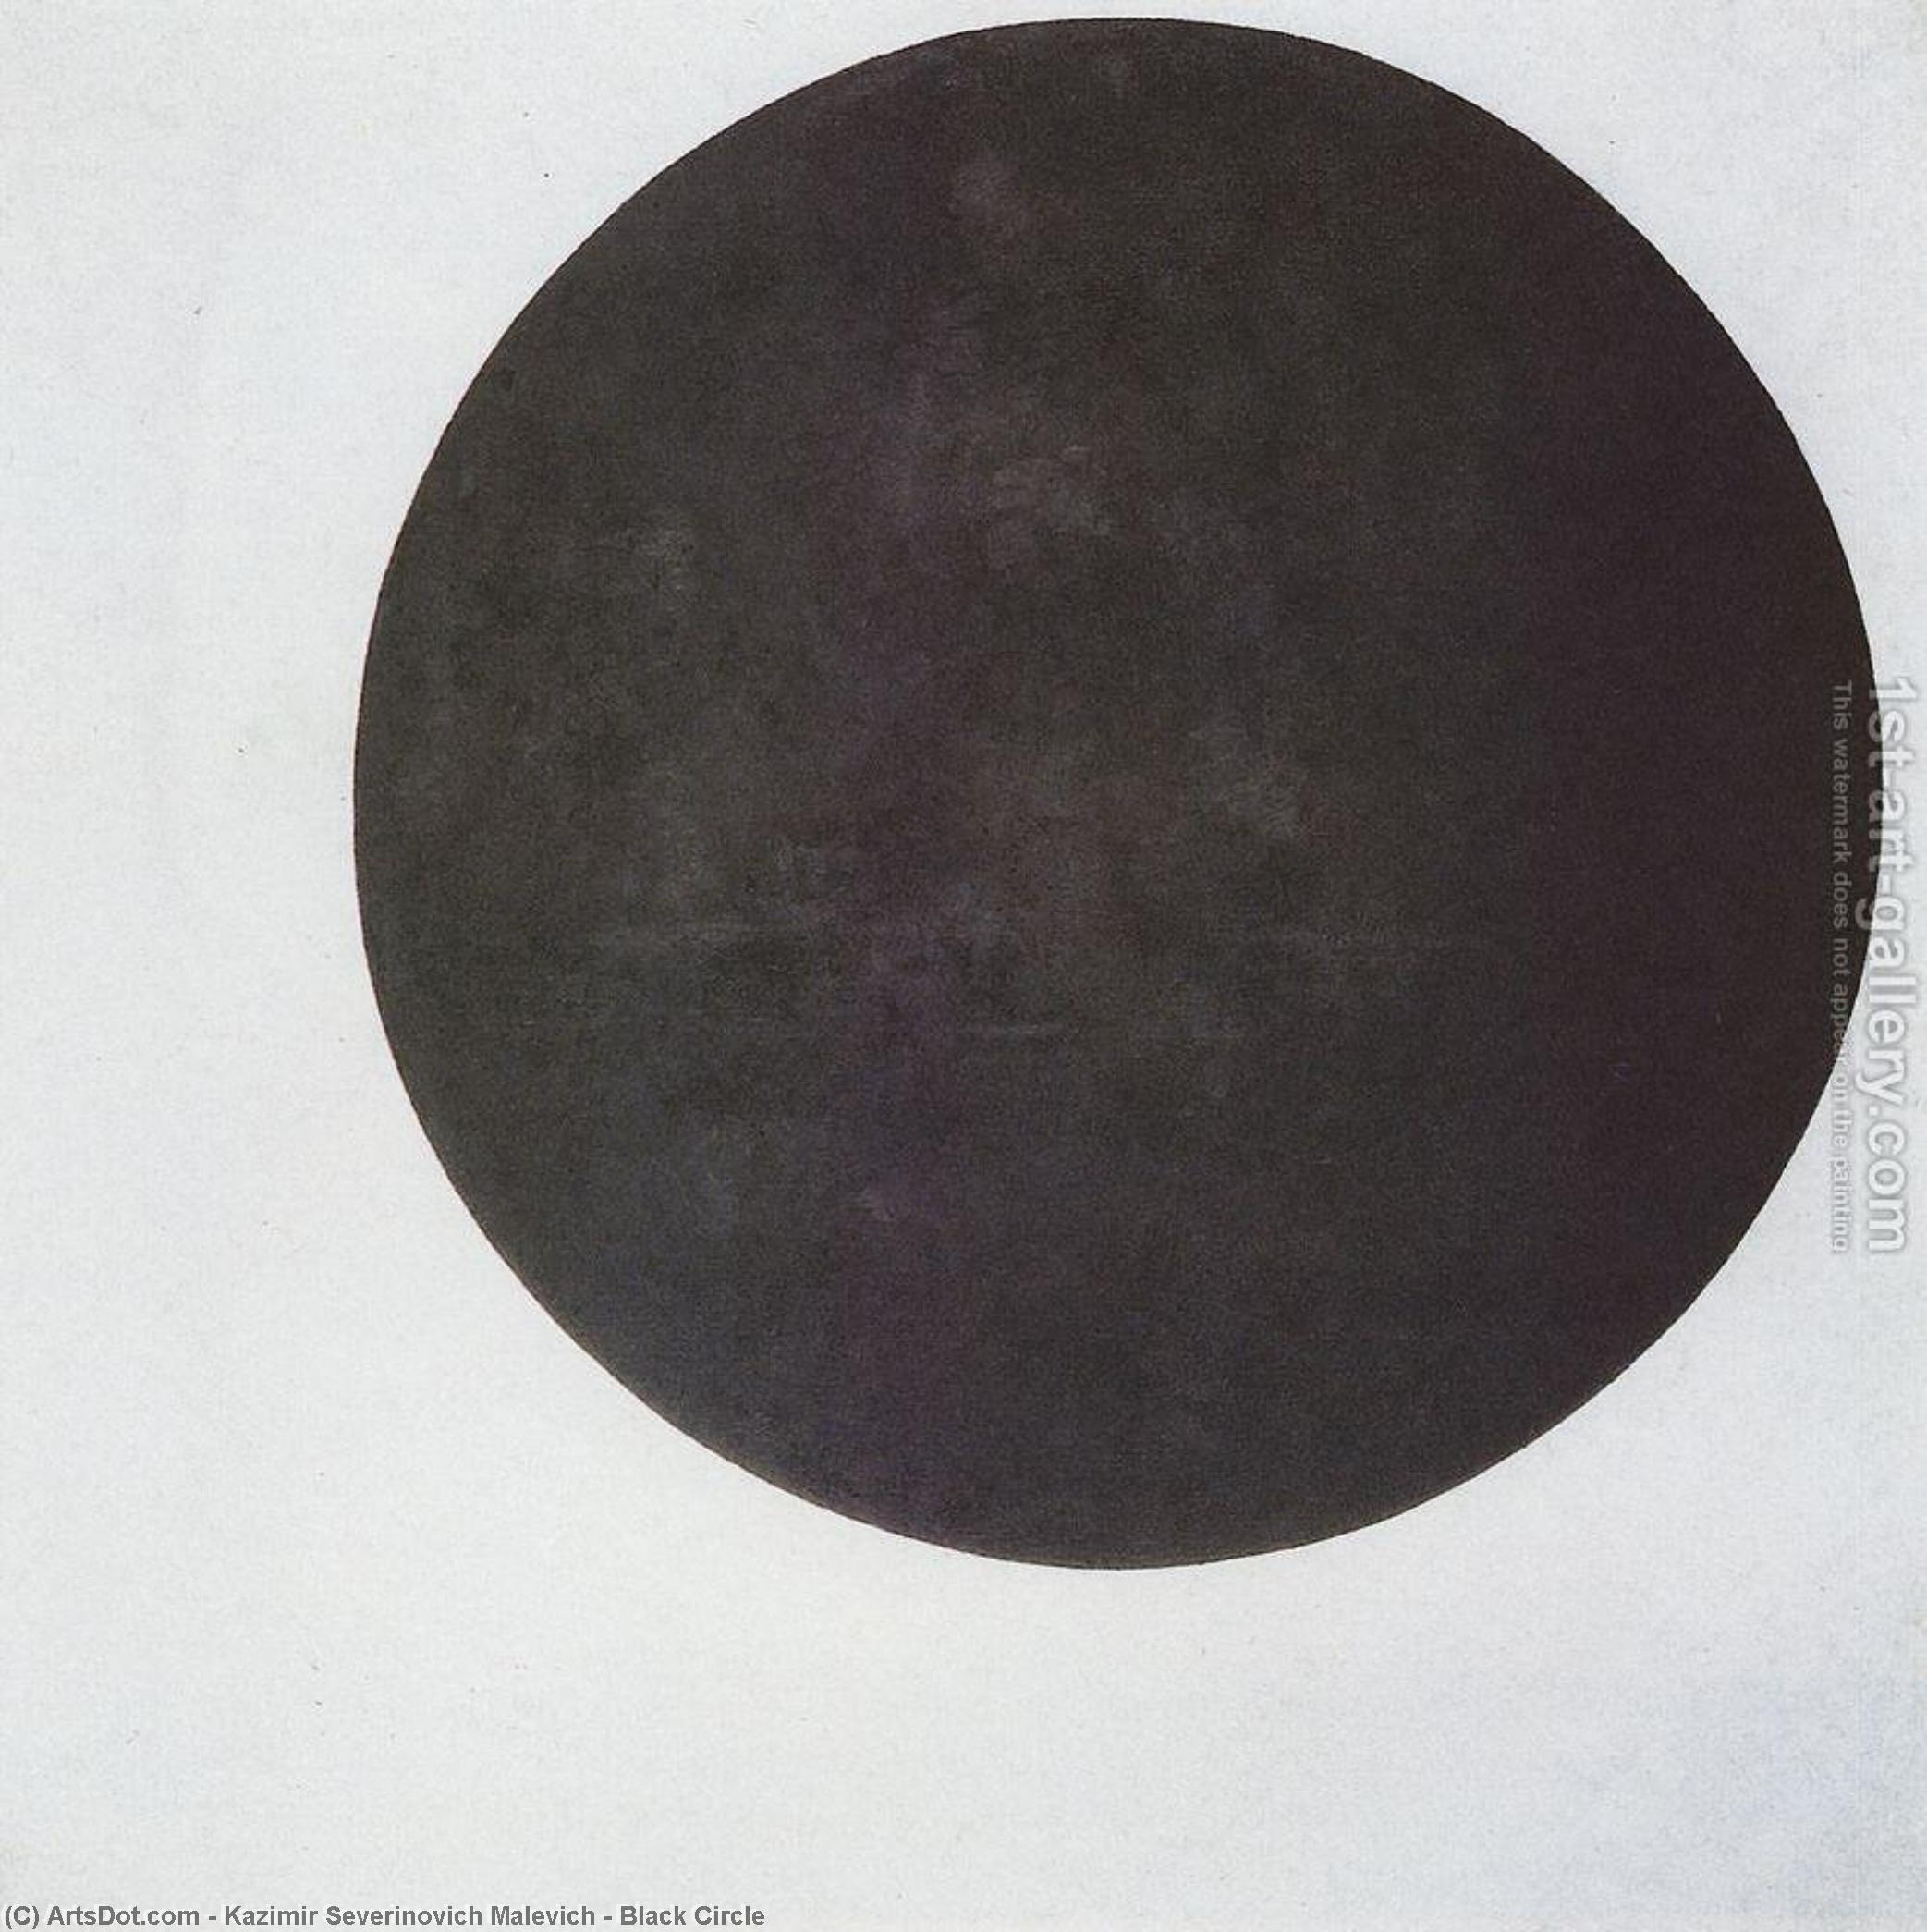 Buy Museum Art Reproductions : Black Circle, 1923 by Kazimir Severinovich Malevich (1879-1935, Ukraine) | ArtsDot.com